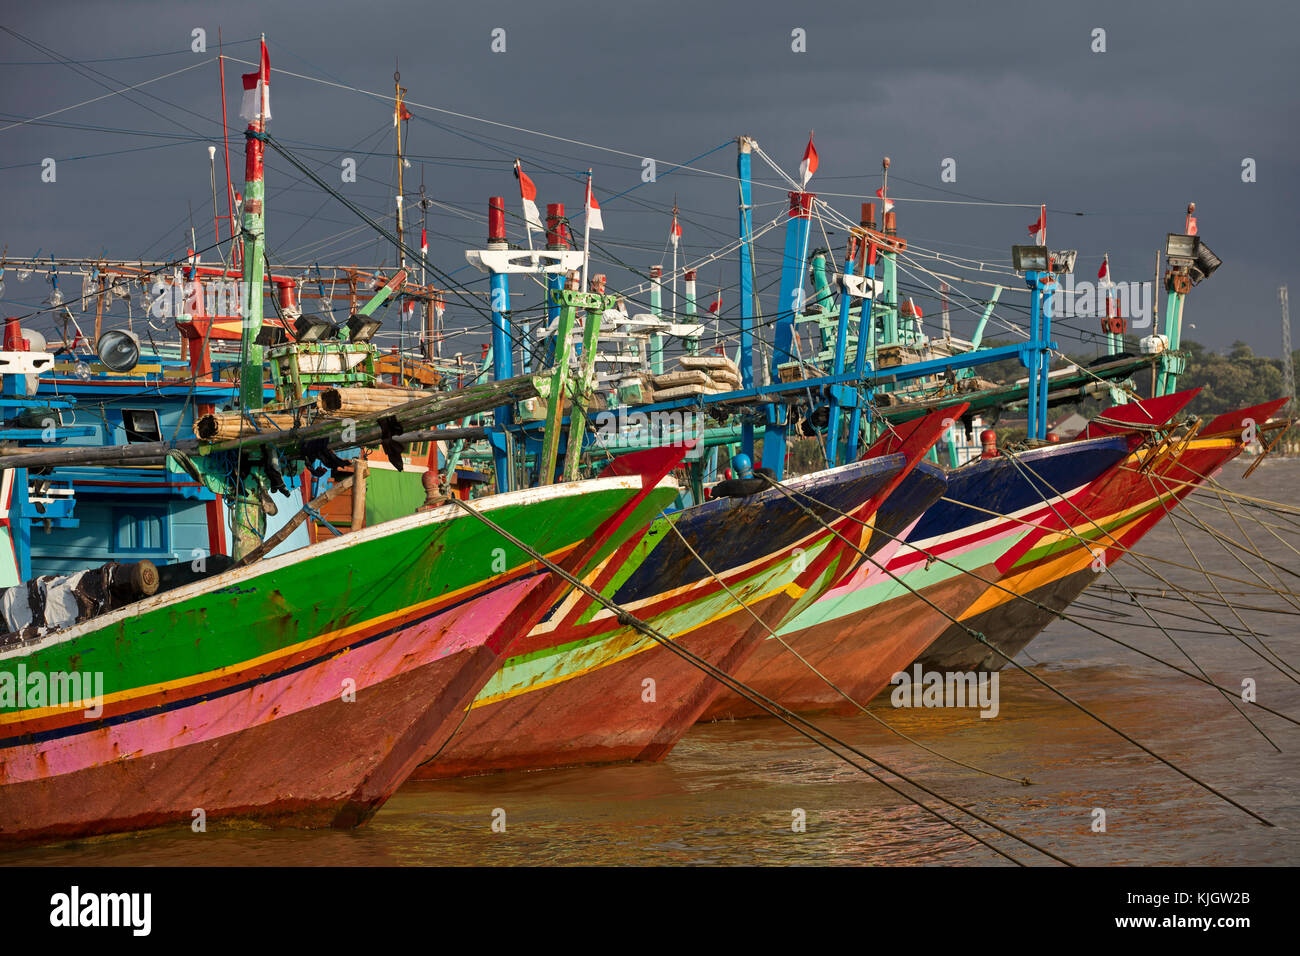 Colourful traditional Indonesian fishing boats in the port at Jepara, Central Java, Indonesia - Stock Image